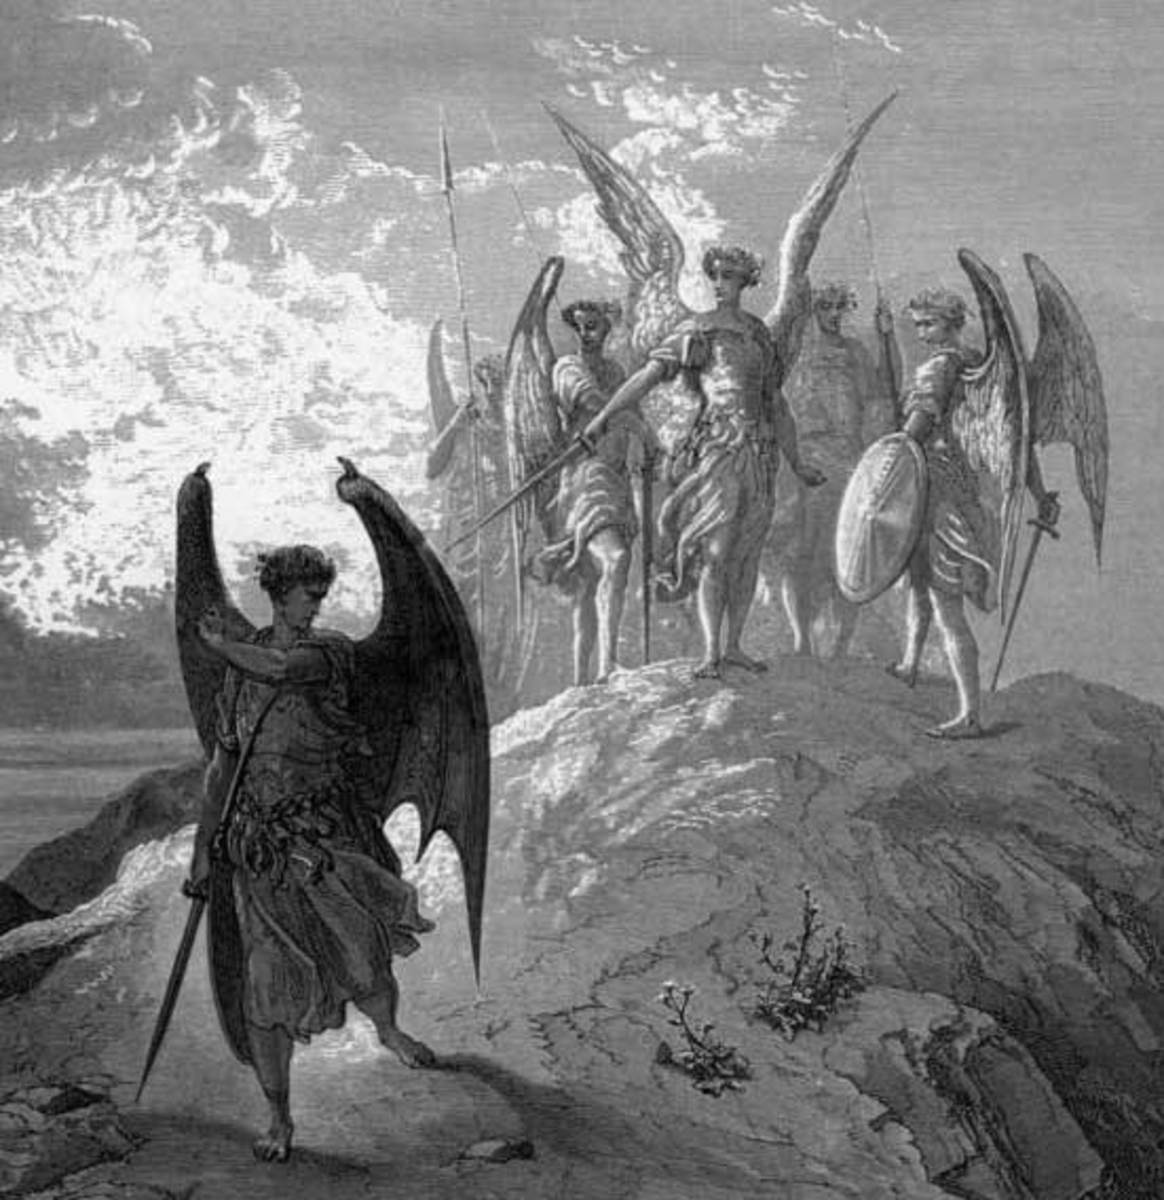 THE BOOK OF ENOCH, THE BIBLE AND THE NEPHILIM GIANTS